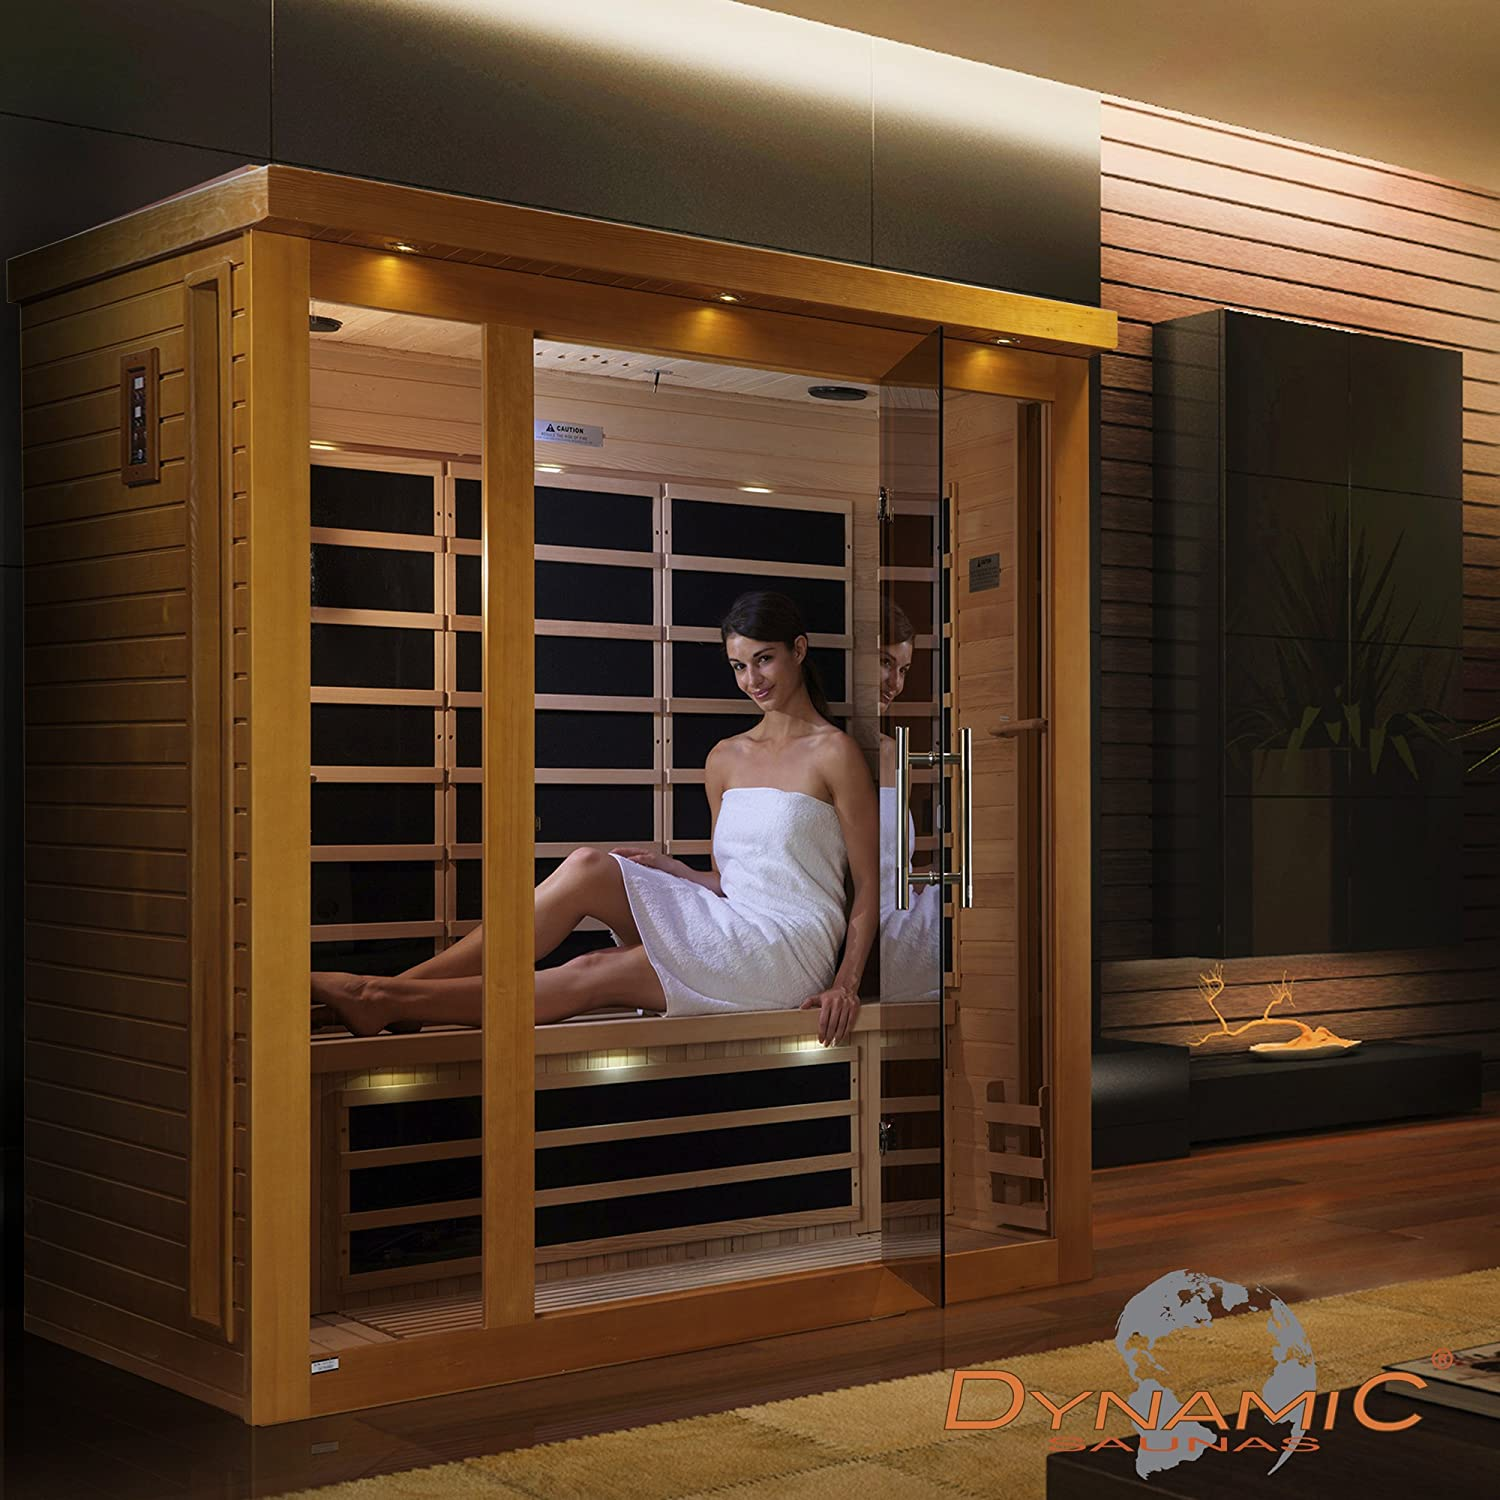 DYNAMIC SAUNAS AMZ-DYN-63-15-01 Florence Low EMF FAR Infrared Sauna